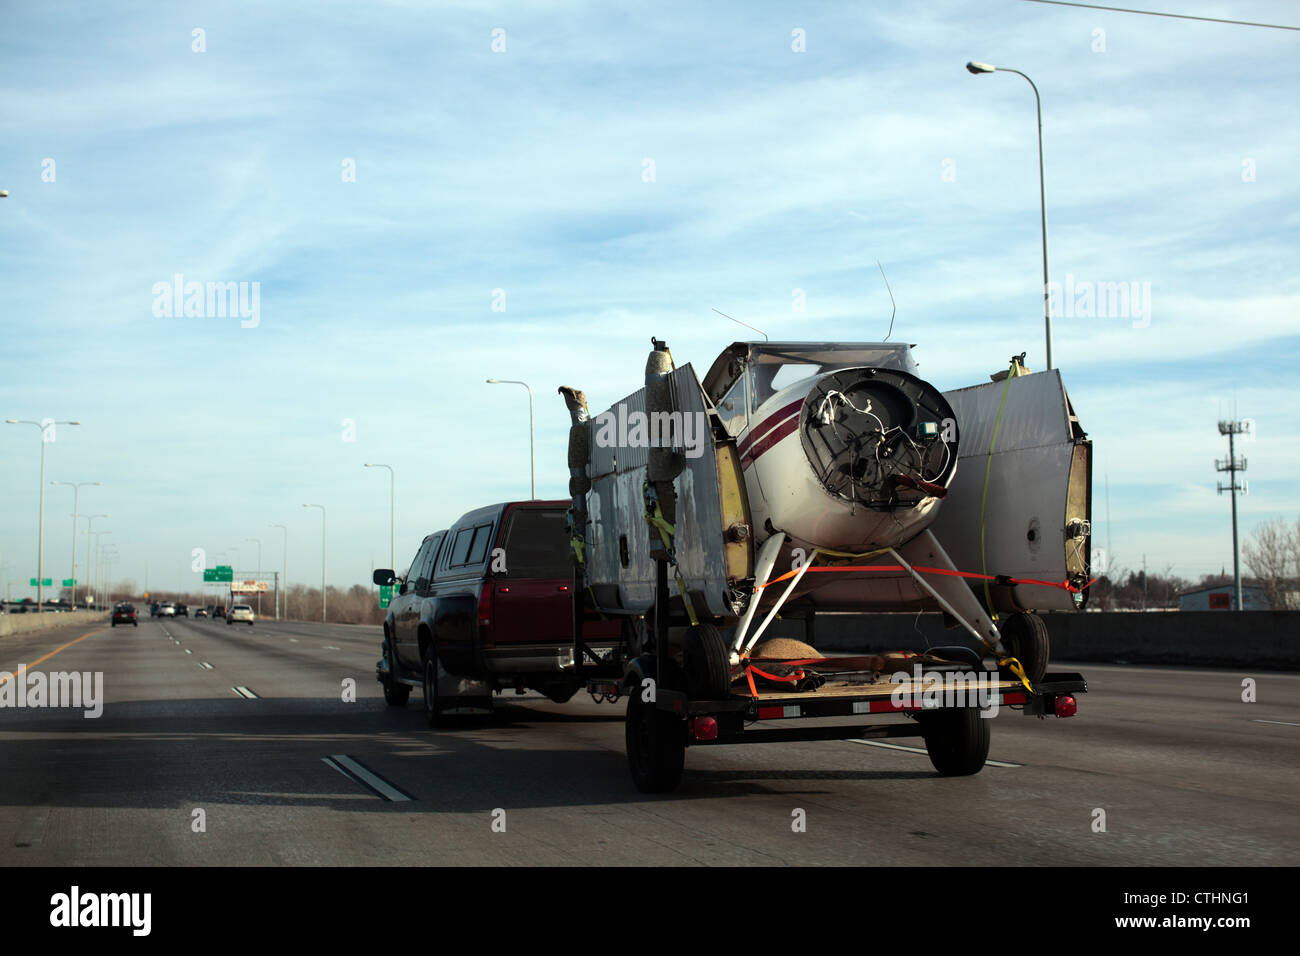 A small plane being transported on a flatbed trailer, disassembled. - Stock Image